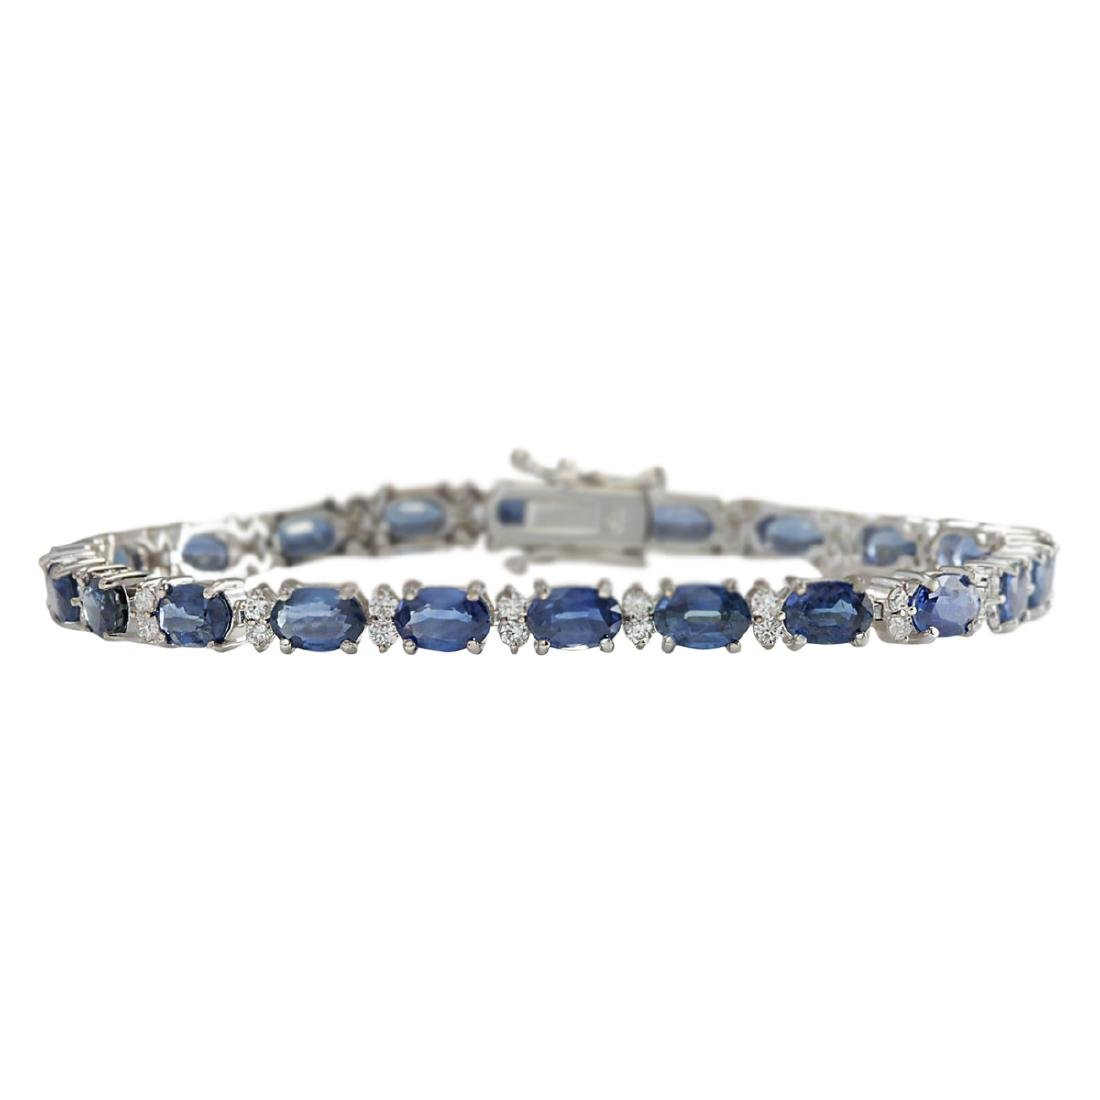 13.49 CTW Natural Sapphire And Diamond Bracelet In 18K